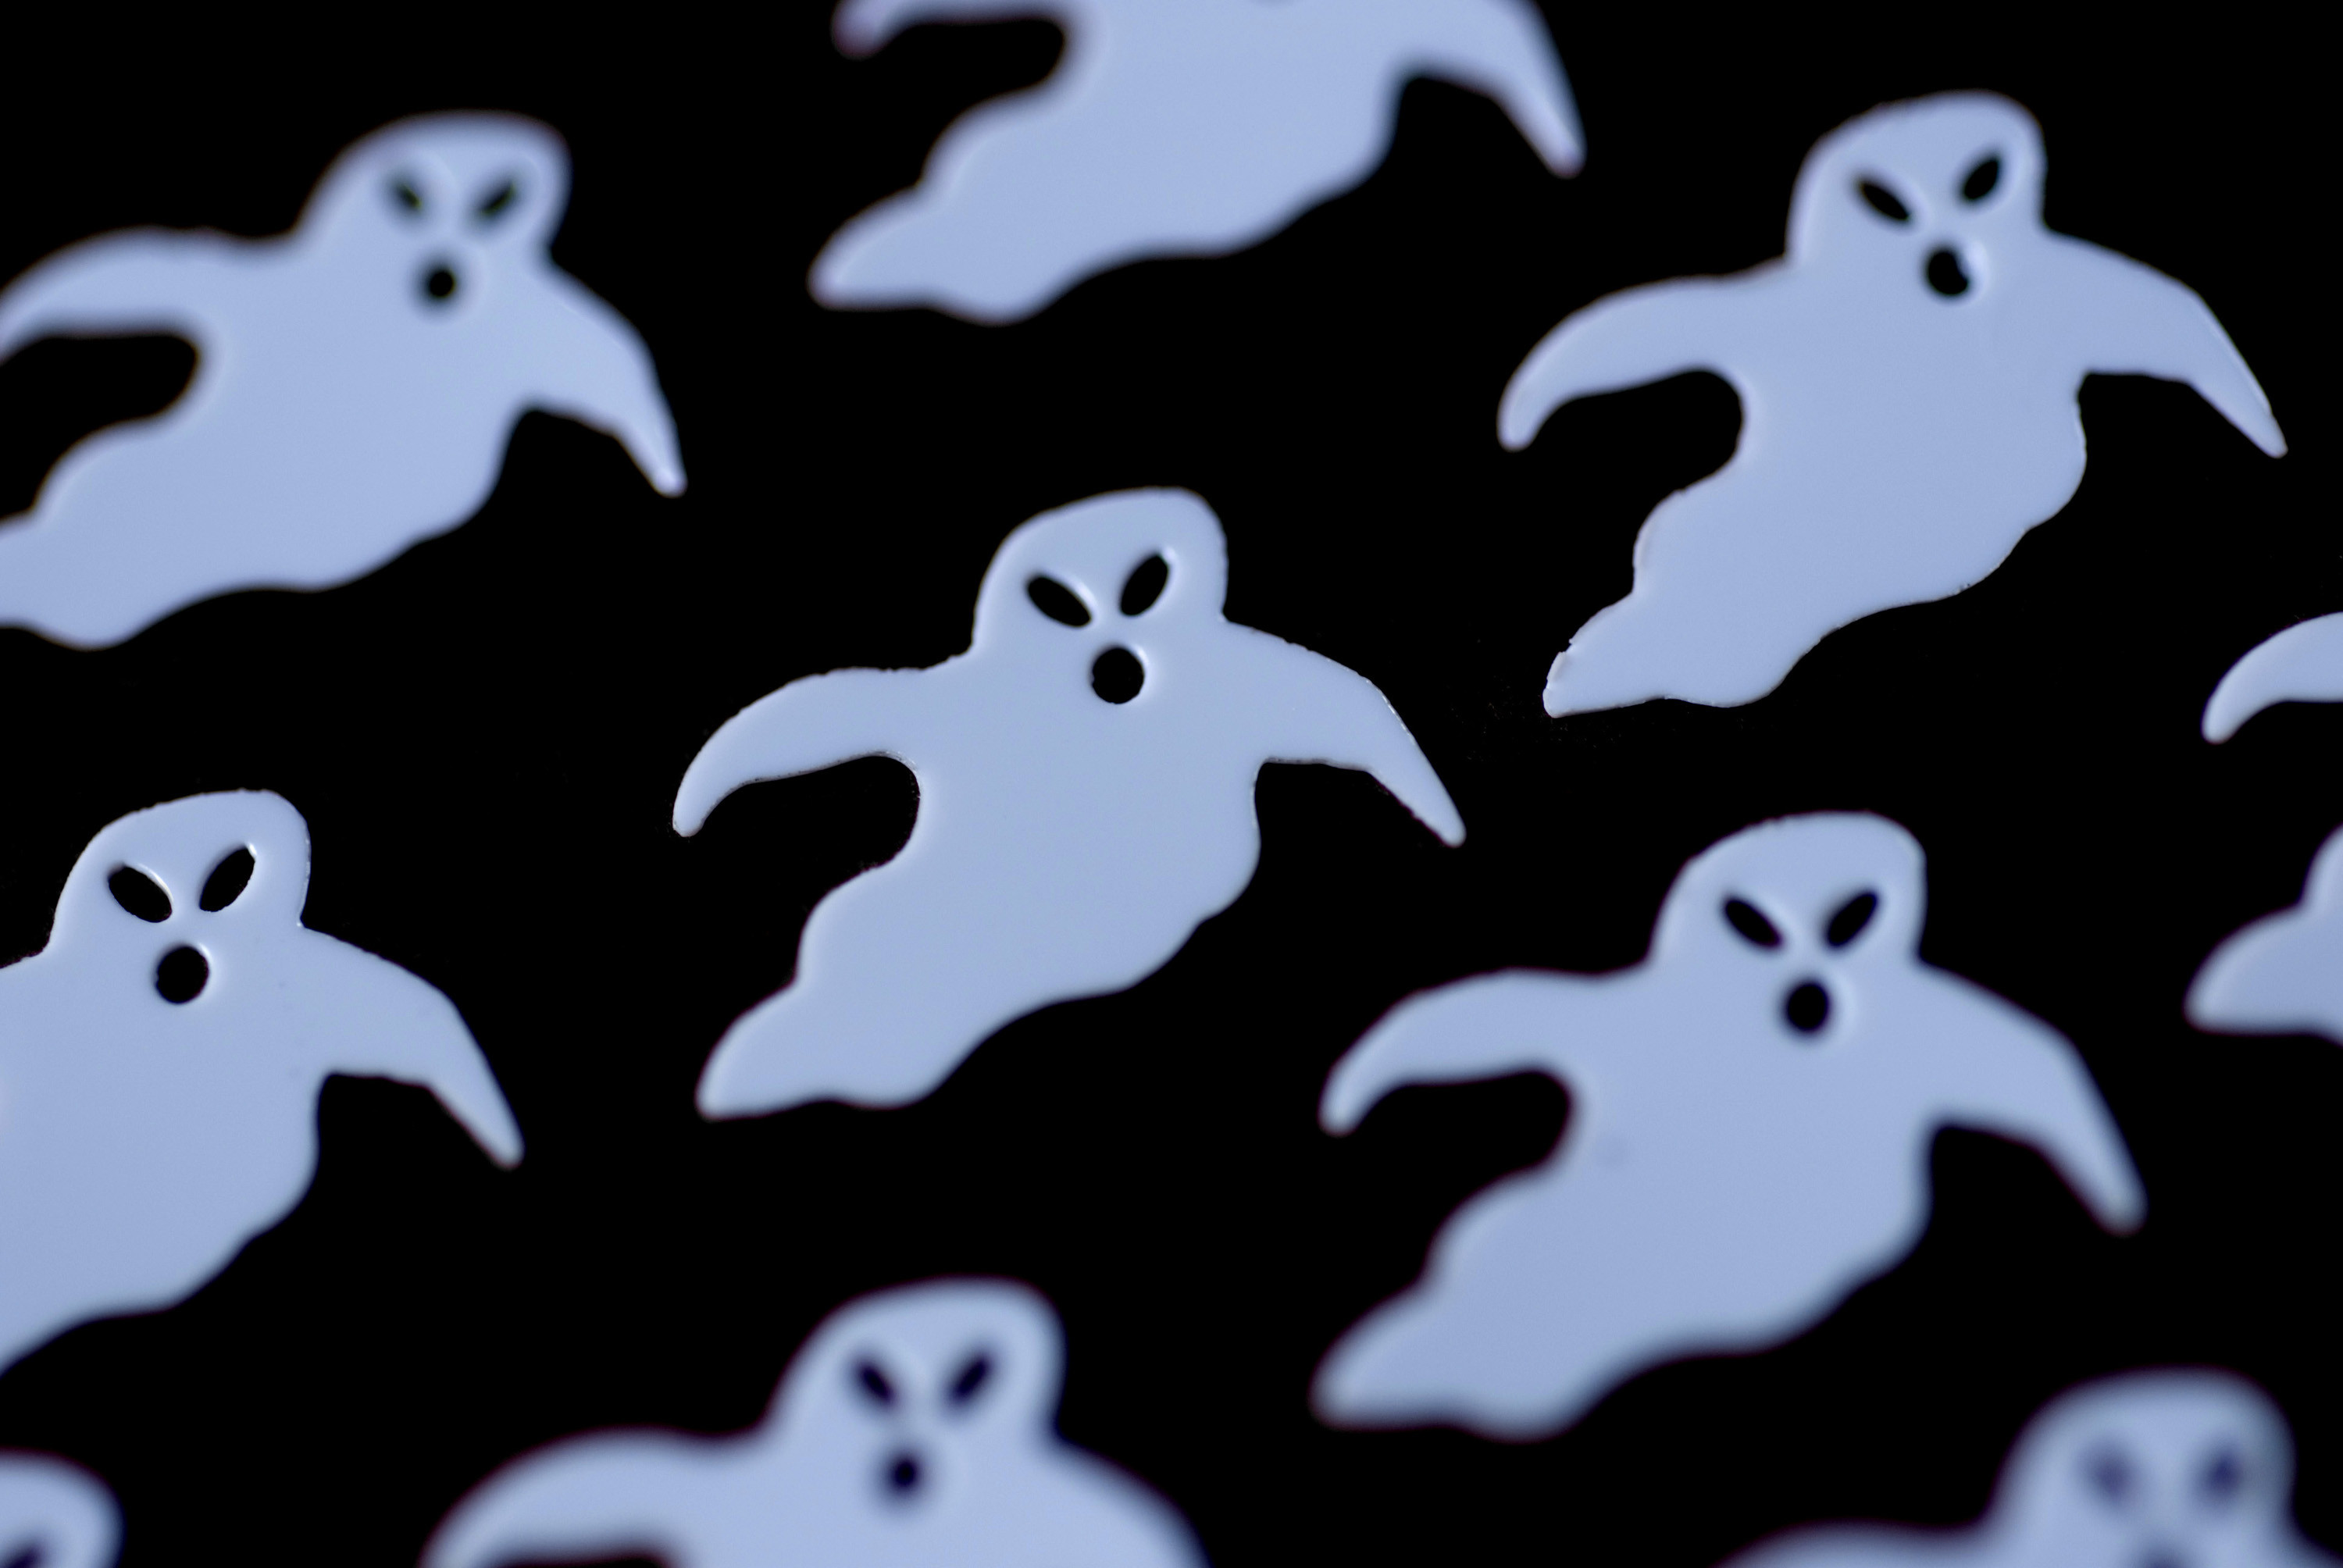 3000x2008 and array of white ghost outline shapes